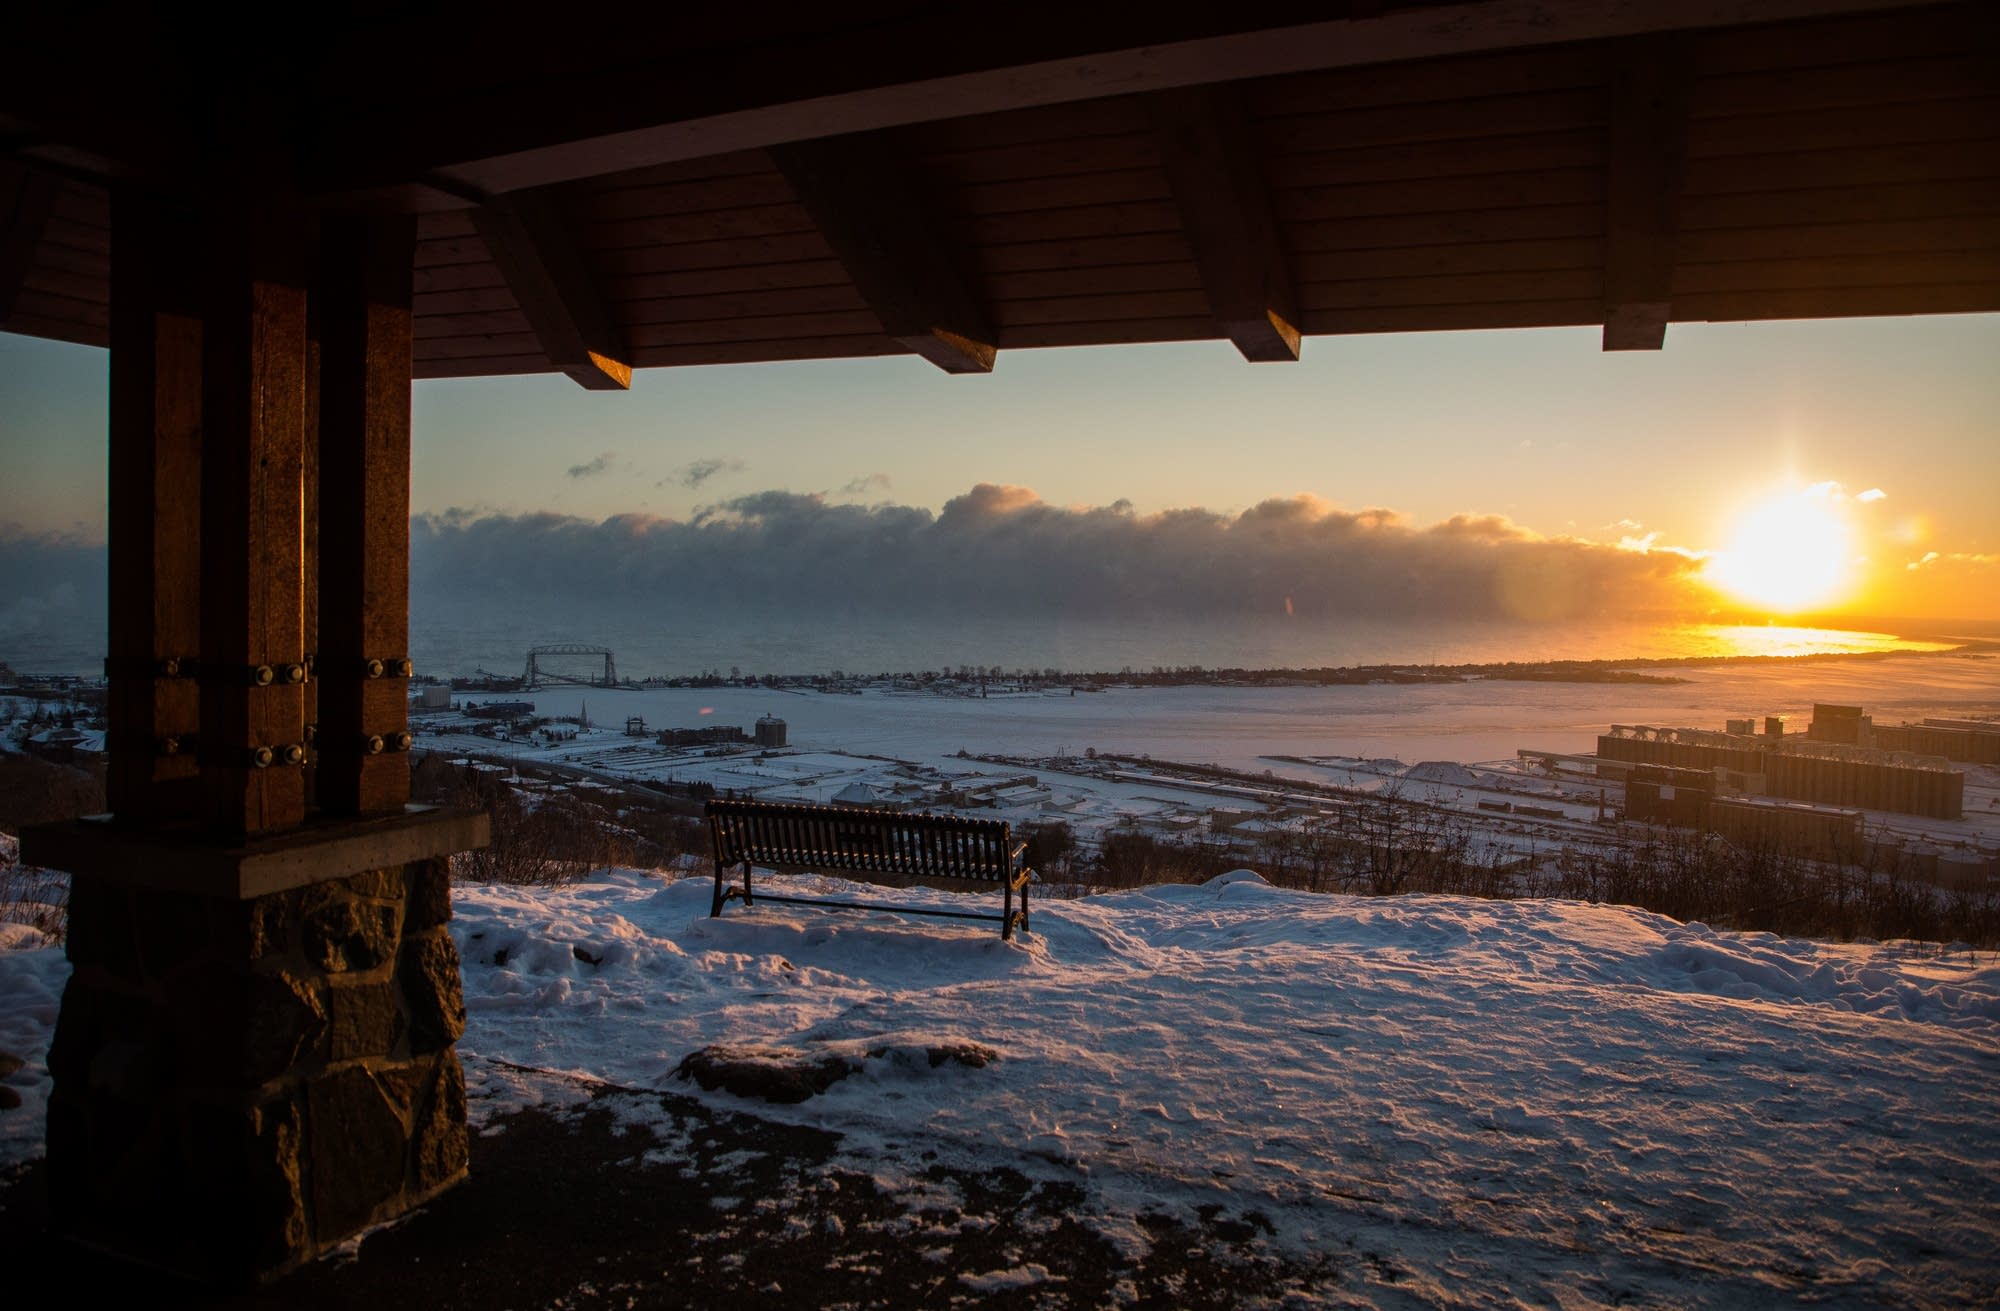 Sea smoke and the sun rise over Lake Superior and the Aerial Lift Bridge.